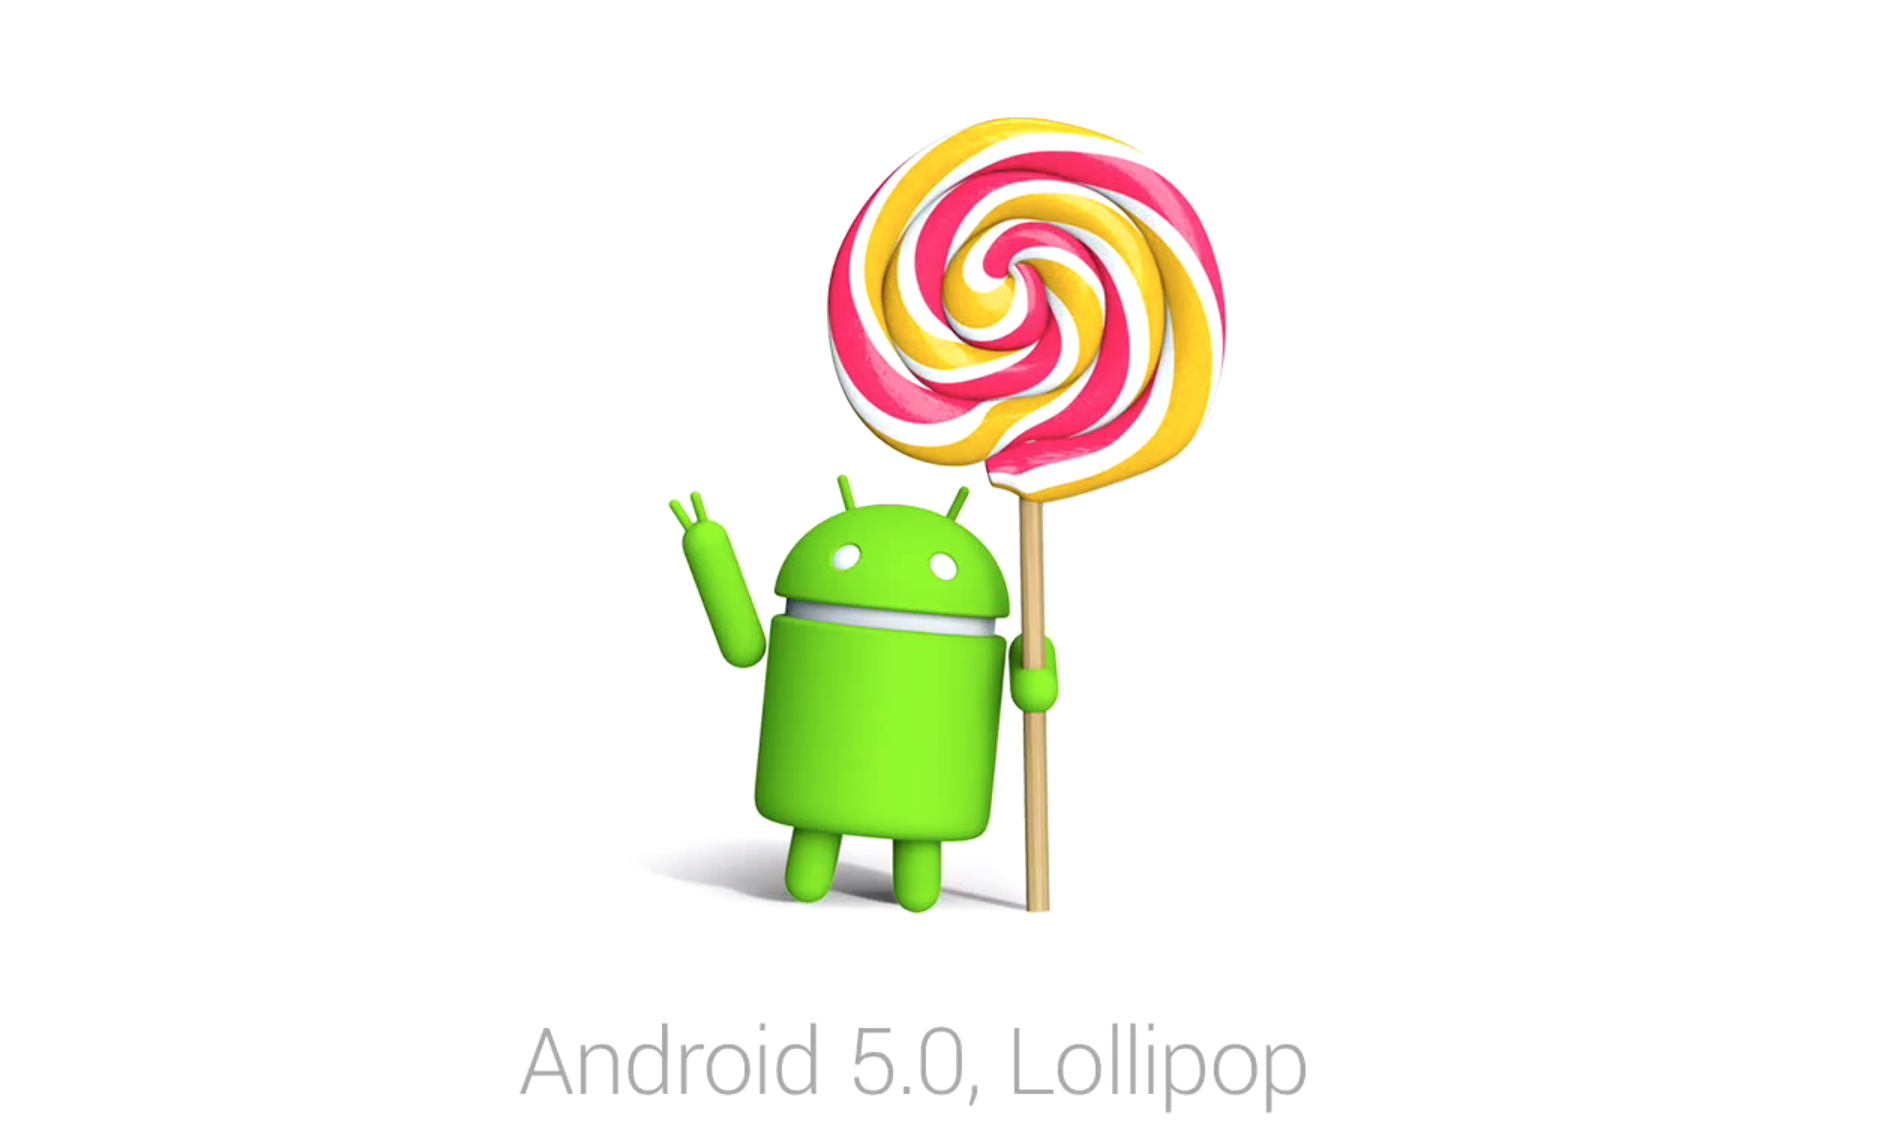 sprint-galaxy-s5-android-5.0-lollipop-ota-update-goes-live-todayihuiury.png